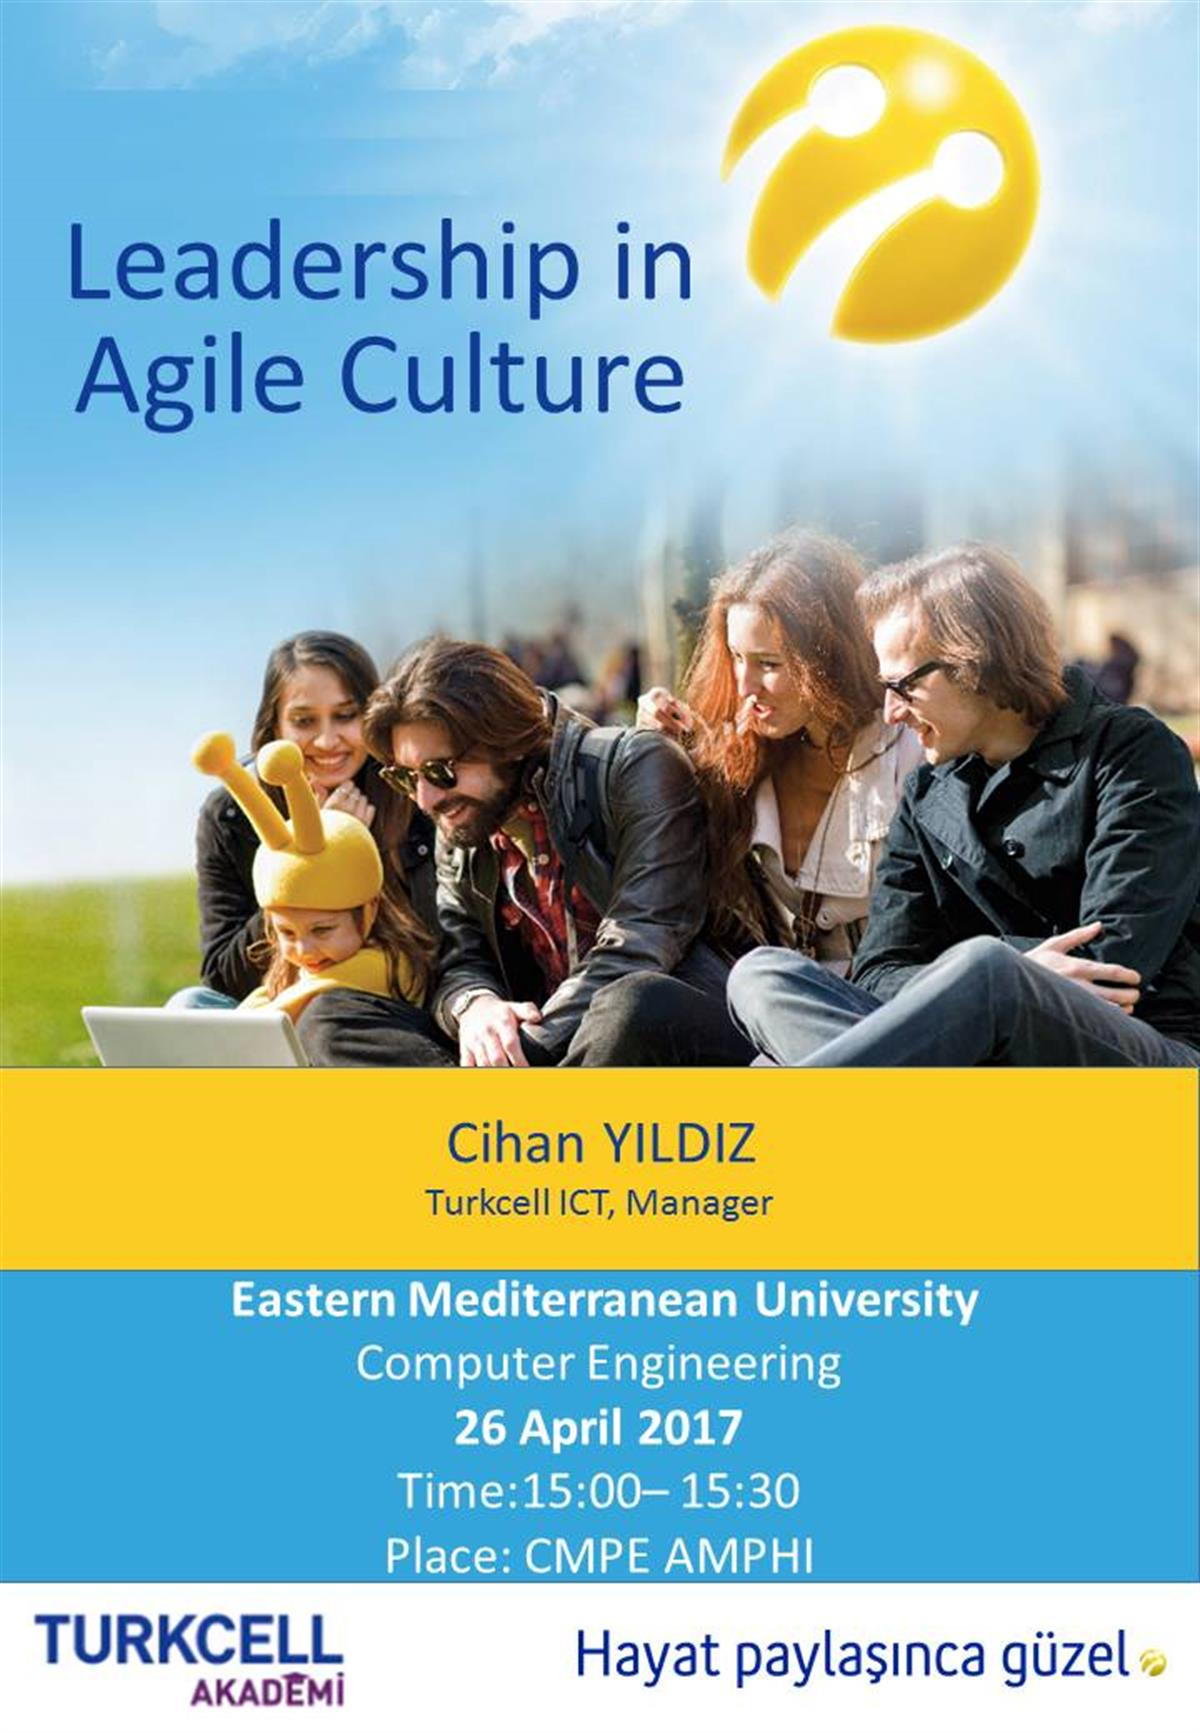 Turkcell-Flyers  Leadership in Agile Culture